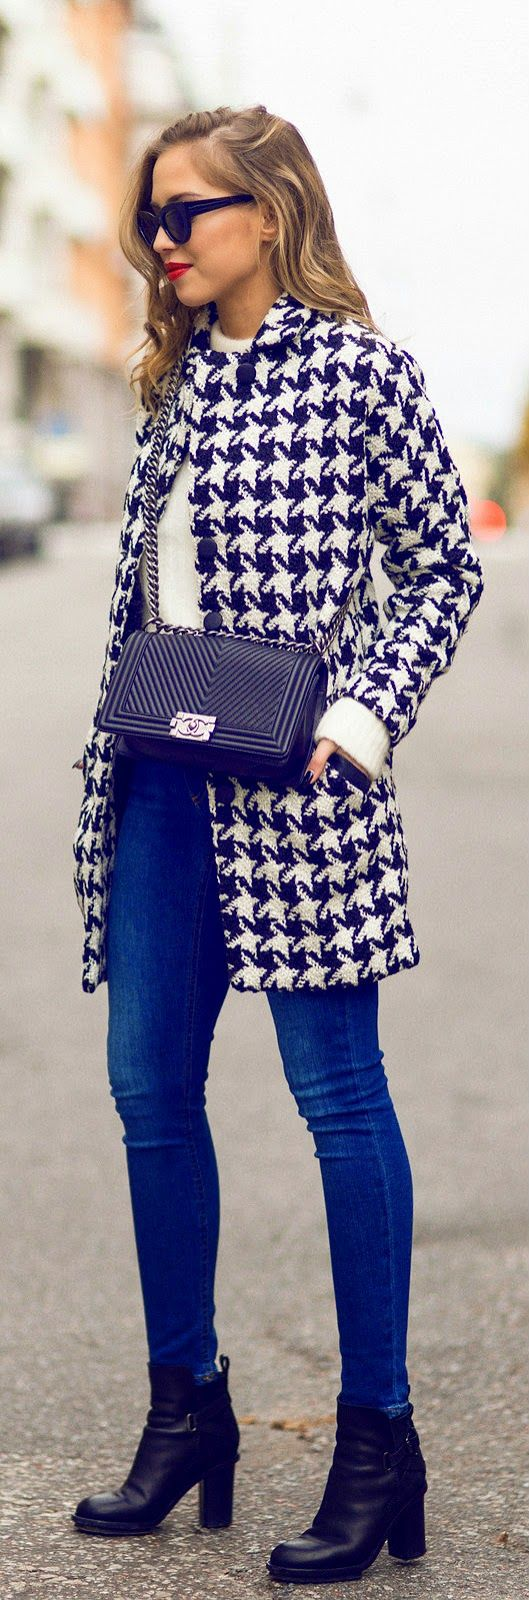 Love the houndstooth.